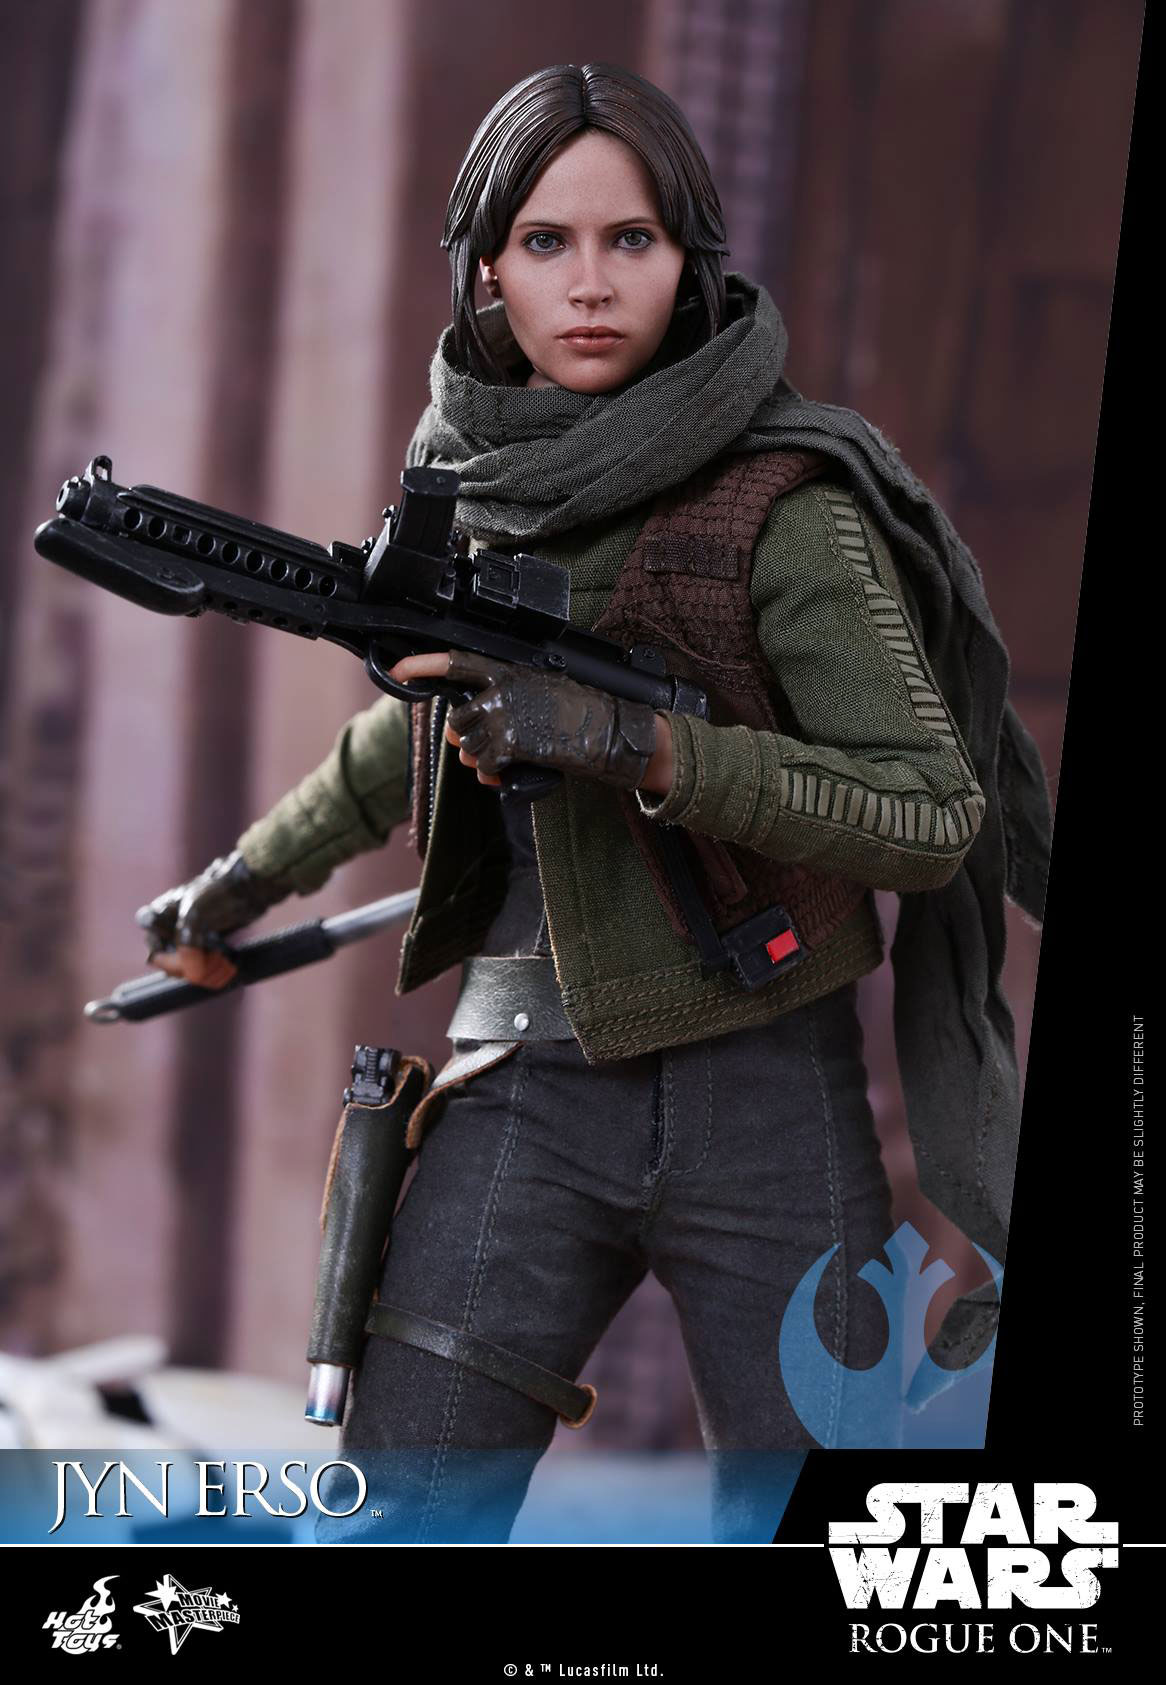 hot-toys-star-wars-rogue-one-jyn-erso-figure-6